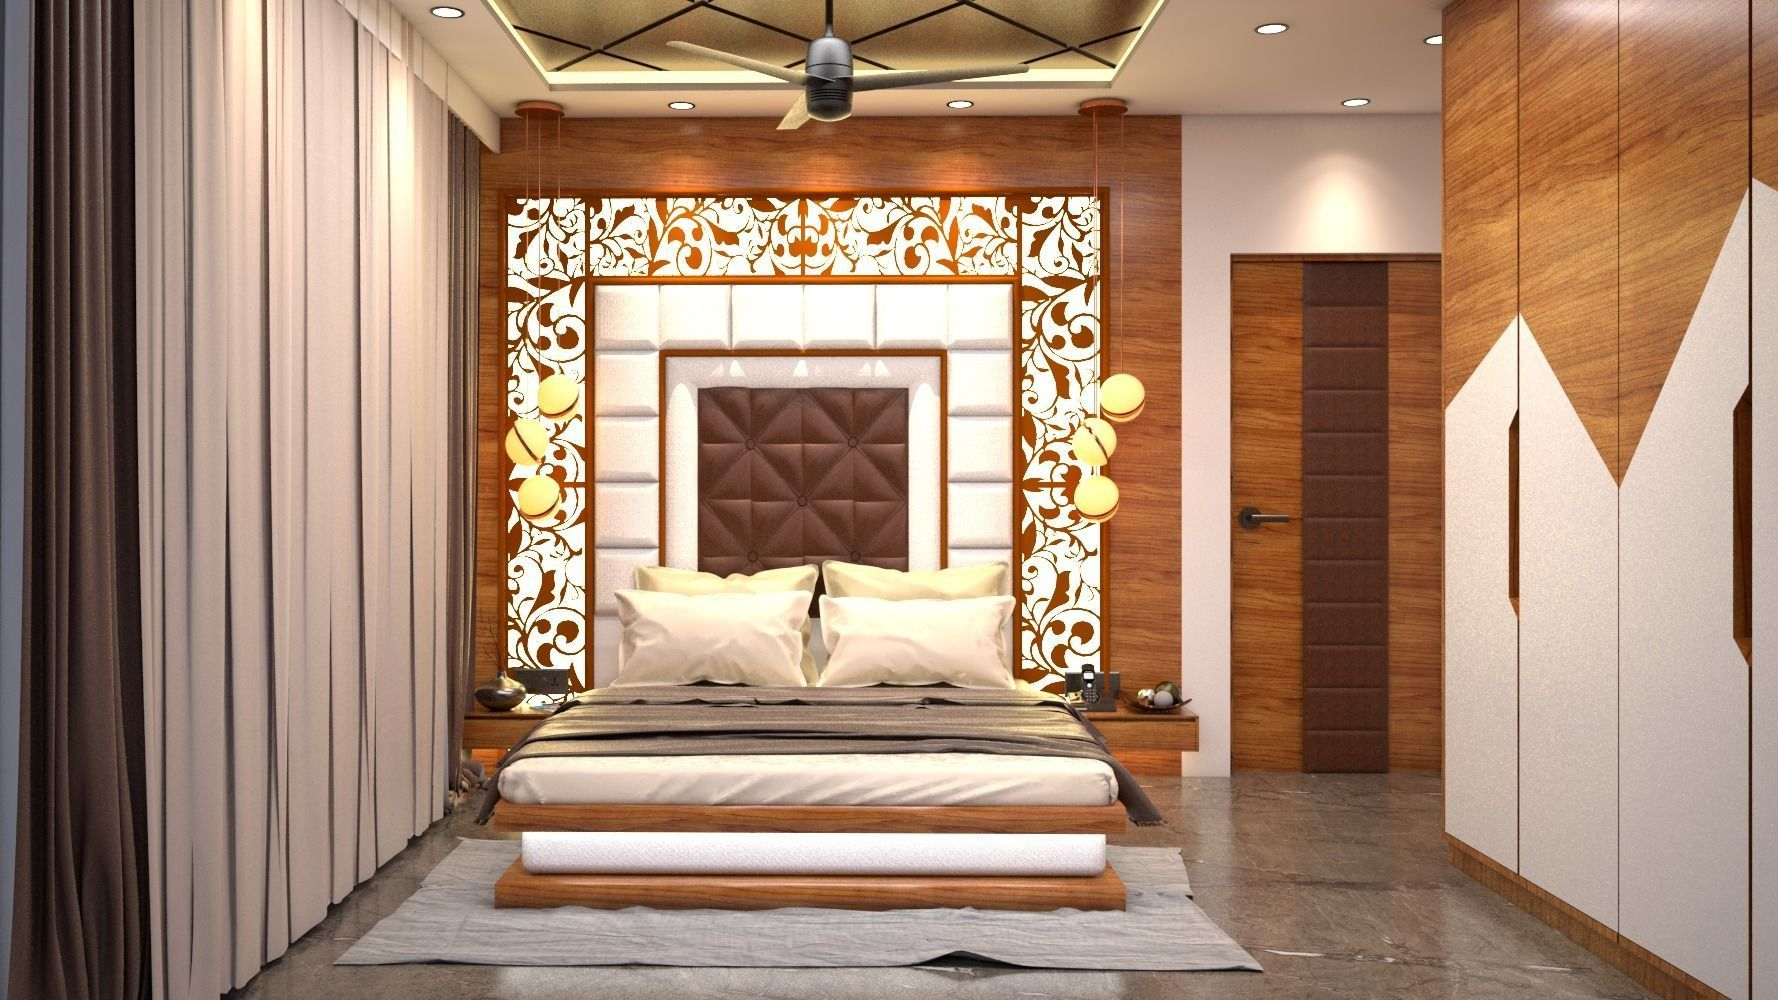 Interior Flat Design- Master bedroom